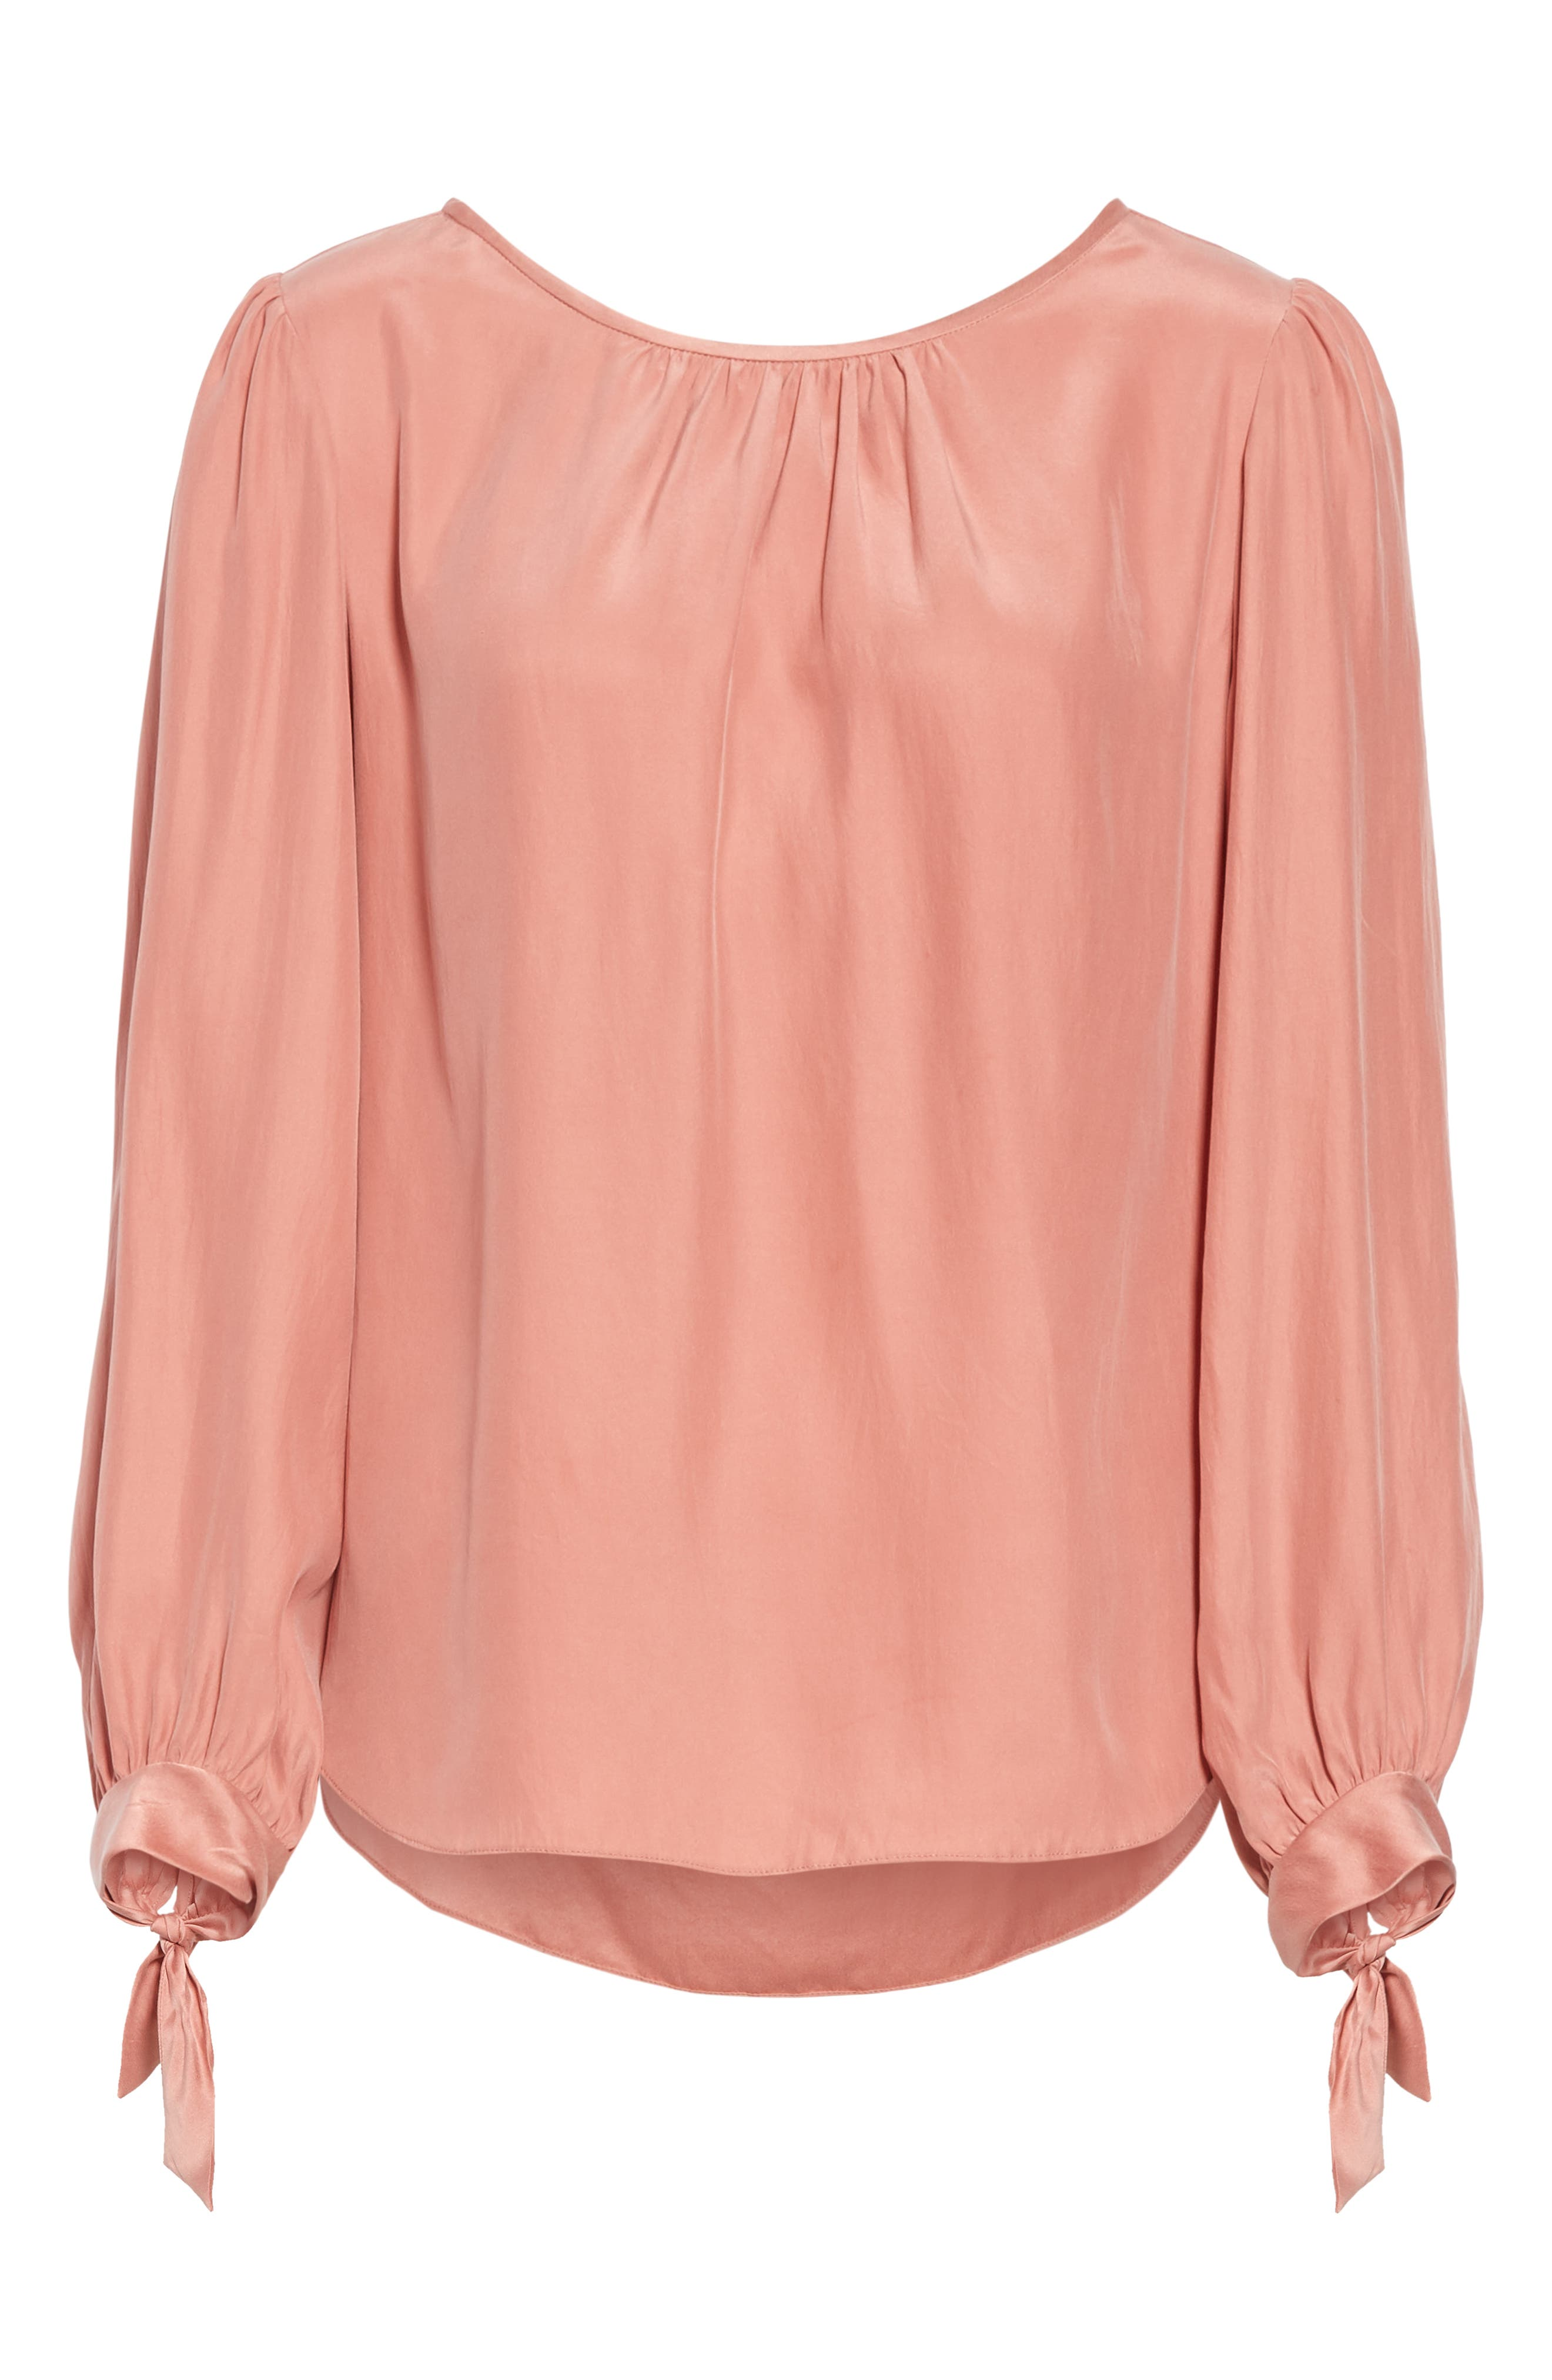 TAILORED BY REBECCA TAYLOR,                             Sleeve Tie Silk Charmeuse Top,                             Alternate thumbnail 6, color,                             LIPGLOSS